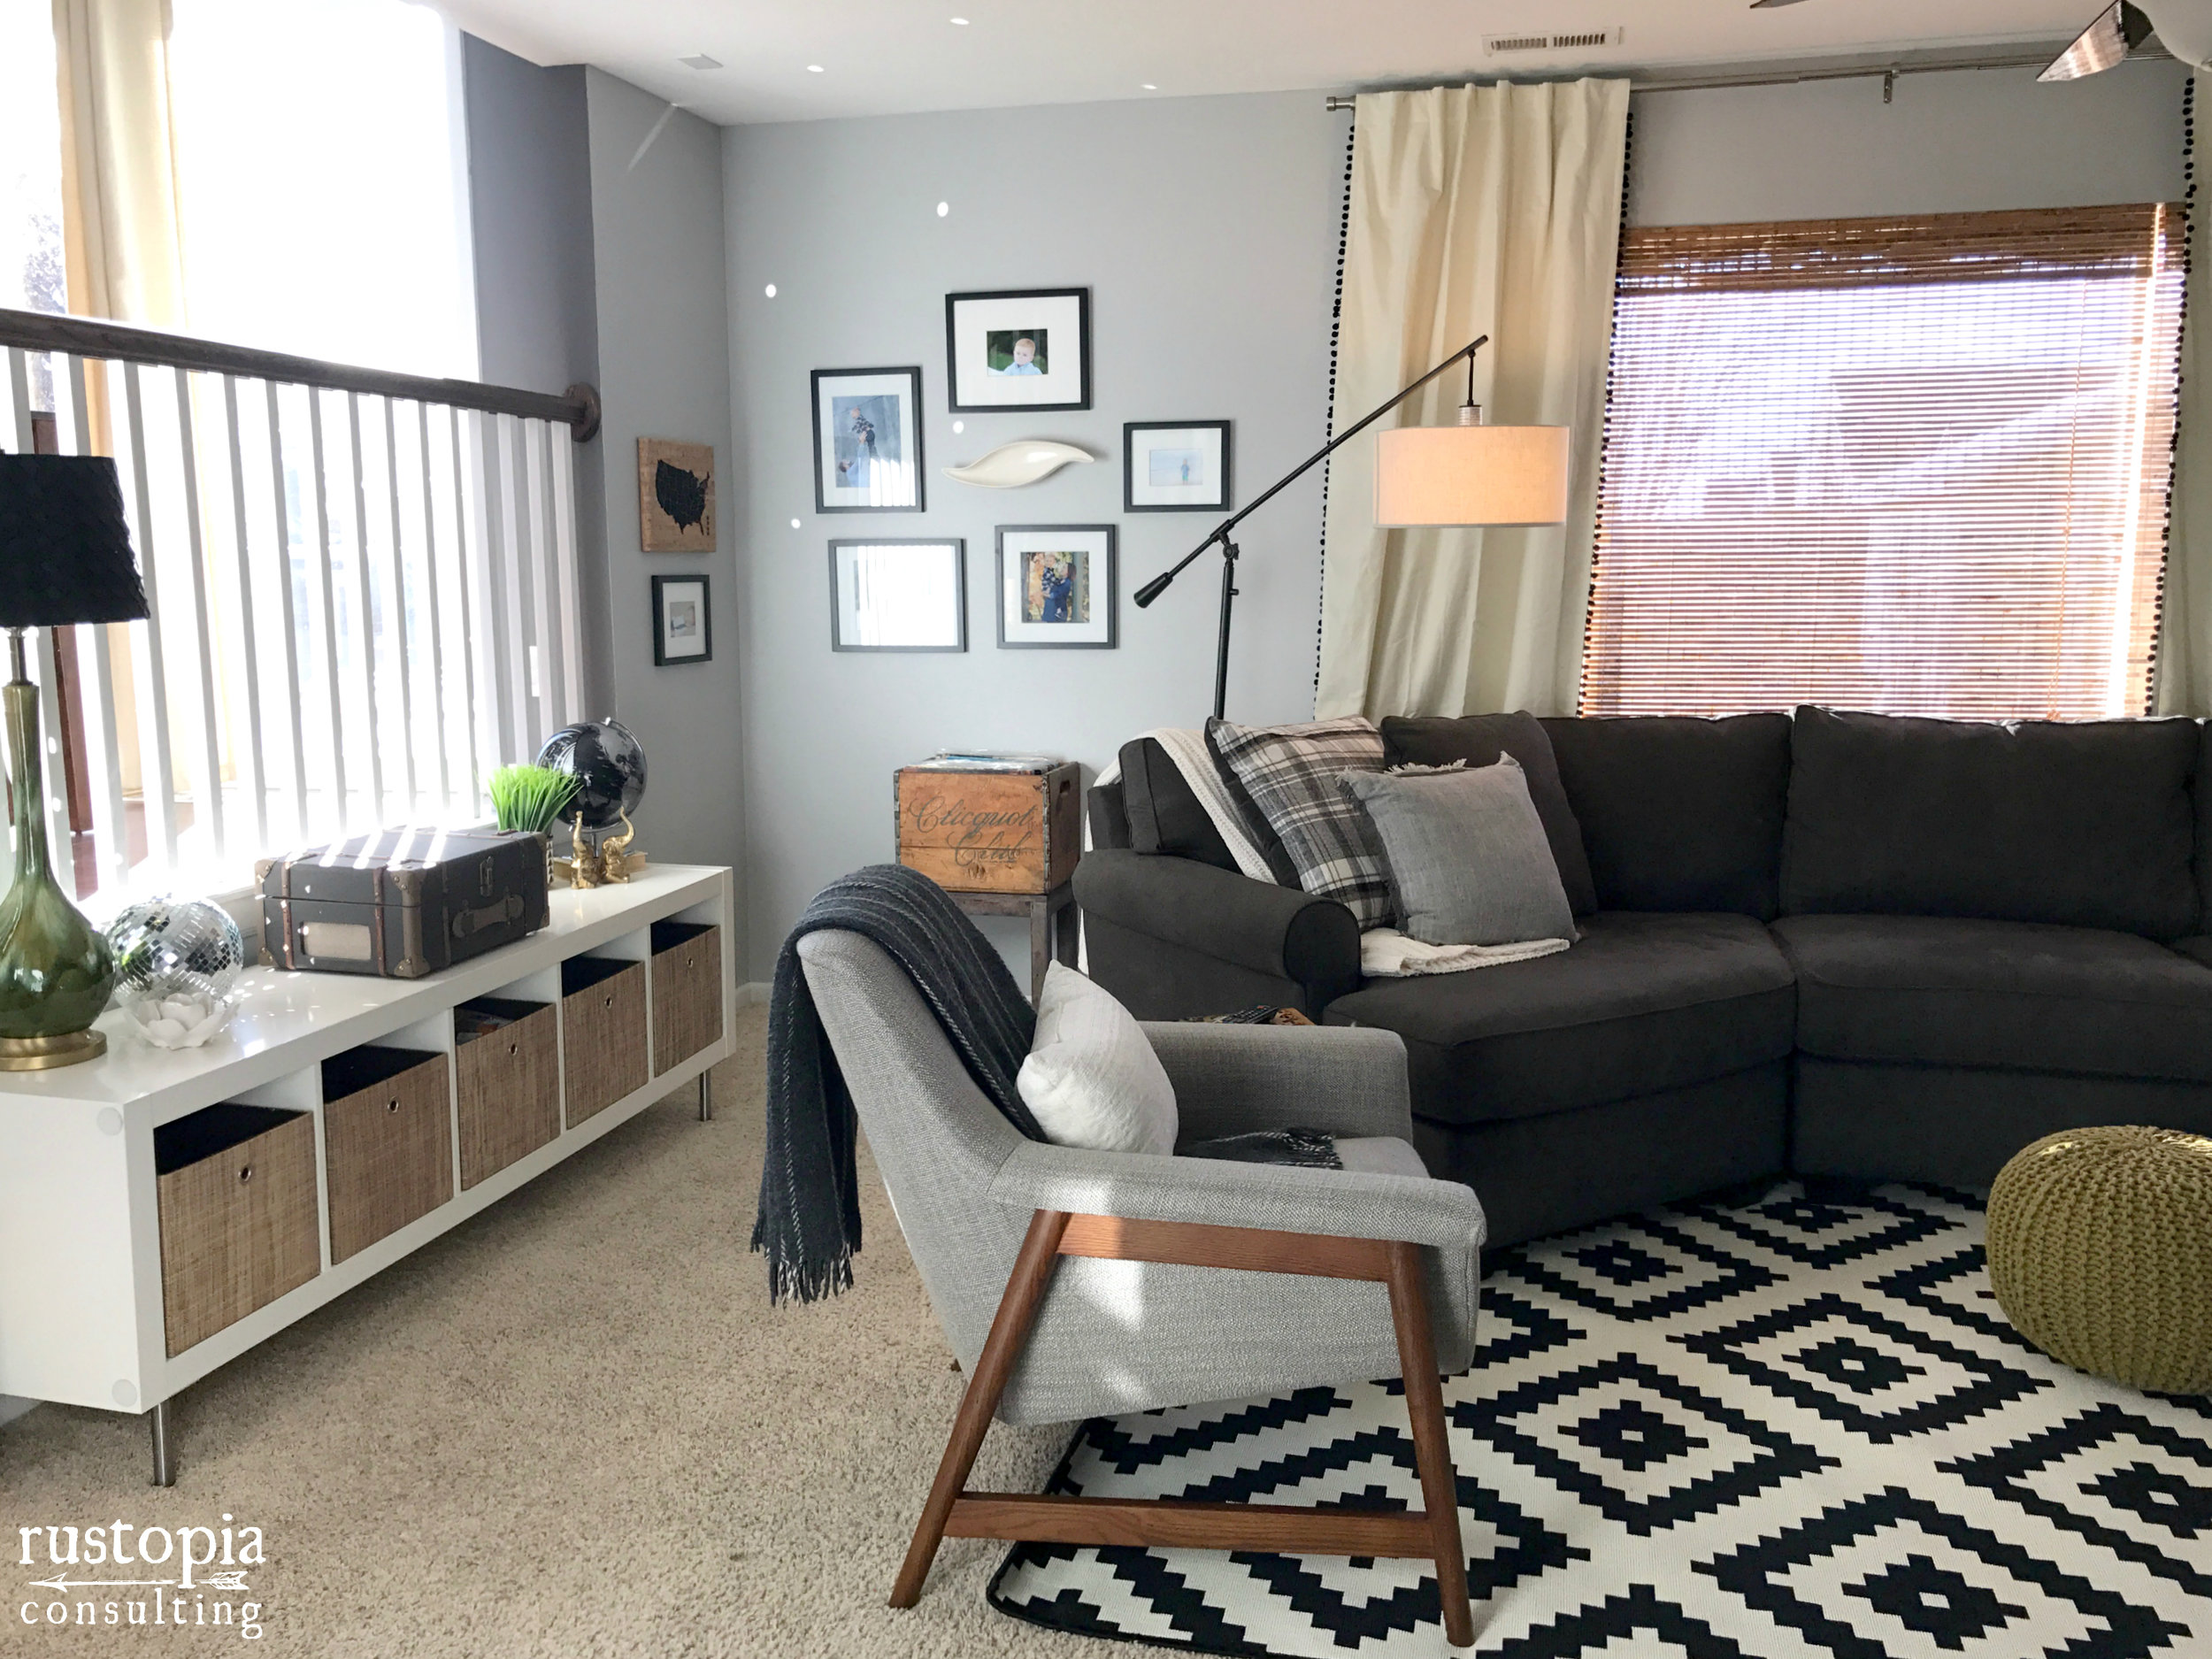 Living room design with a black and white area rug, floor lamp, and a gray accent chair. | RustopiaConsulting.com